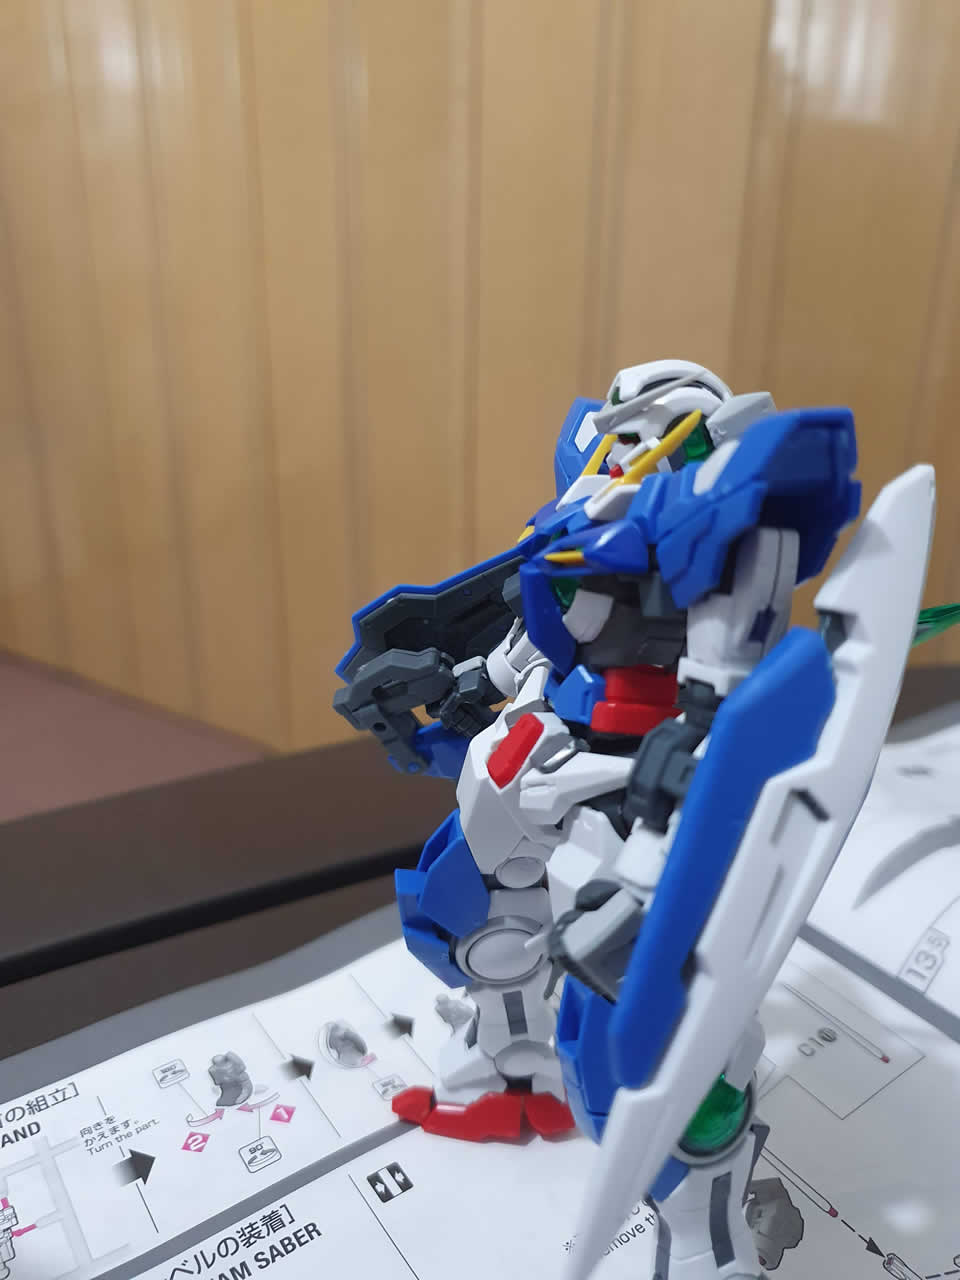 Exia Repair RG equipping the GN Sword